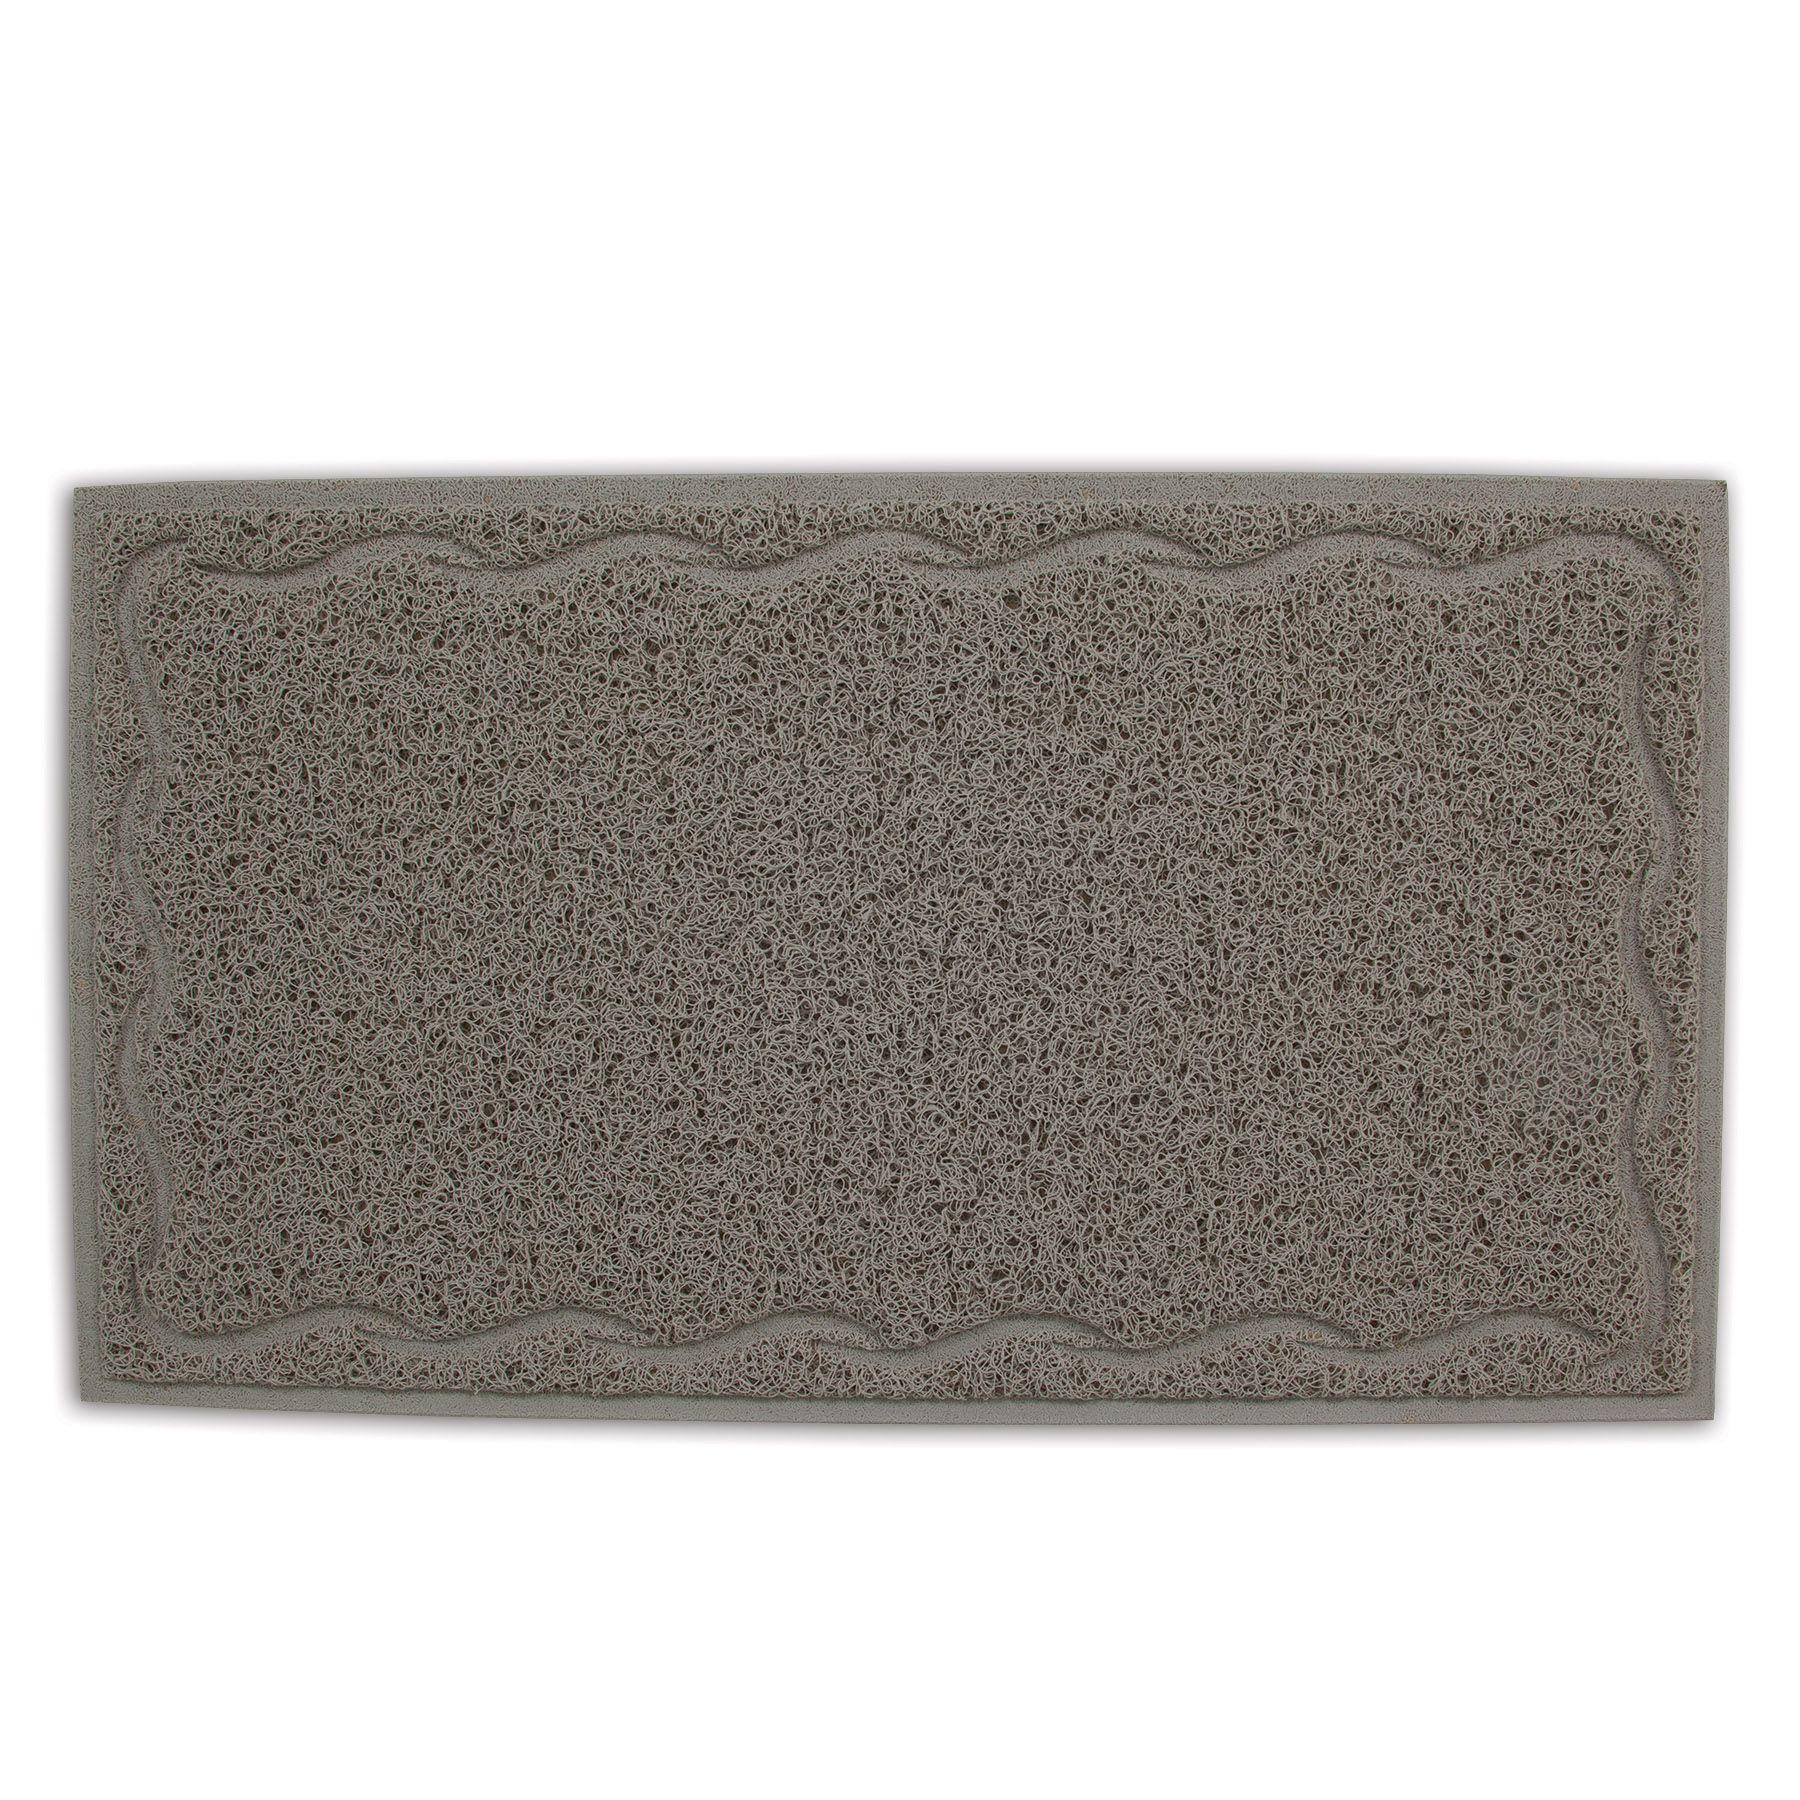 Petmate Tufted Litter Mat, Stone, 23 x 13 x 0.25 inches